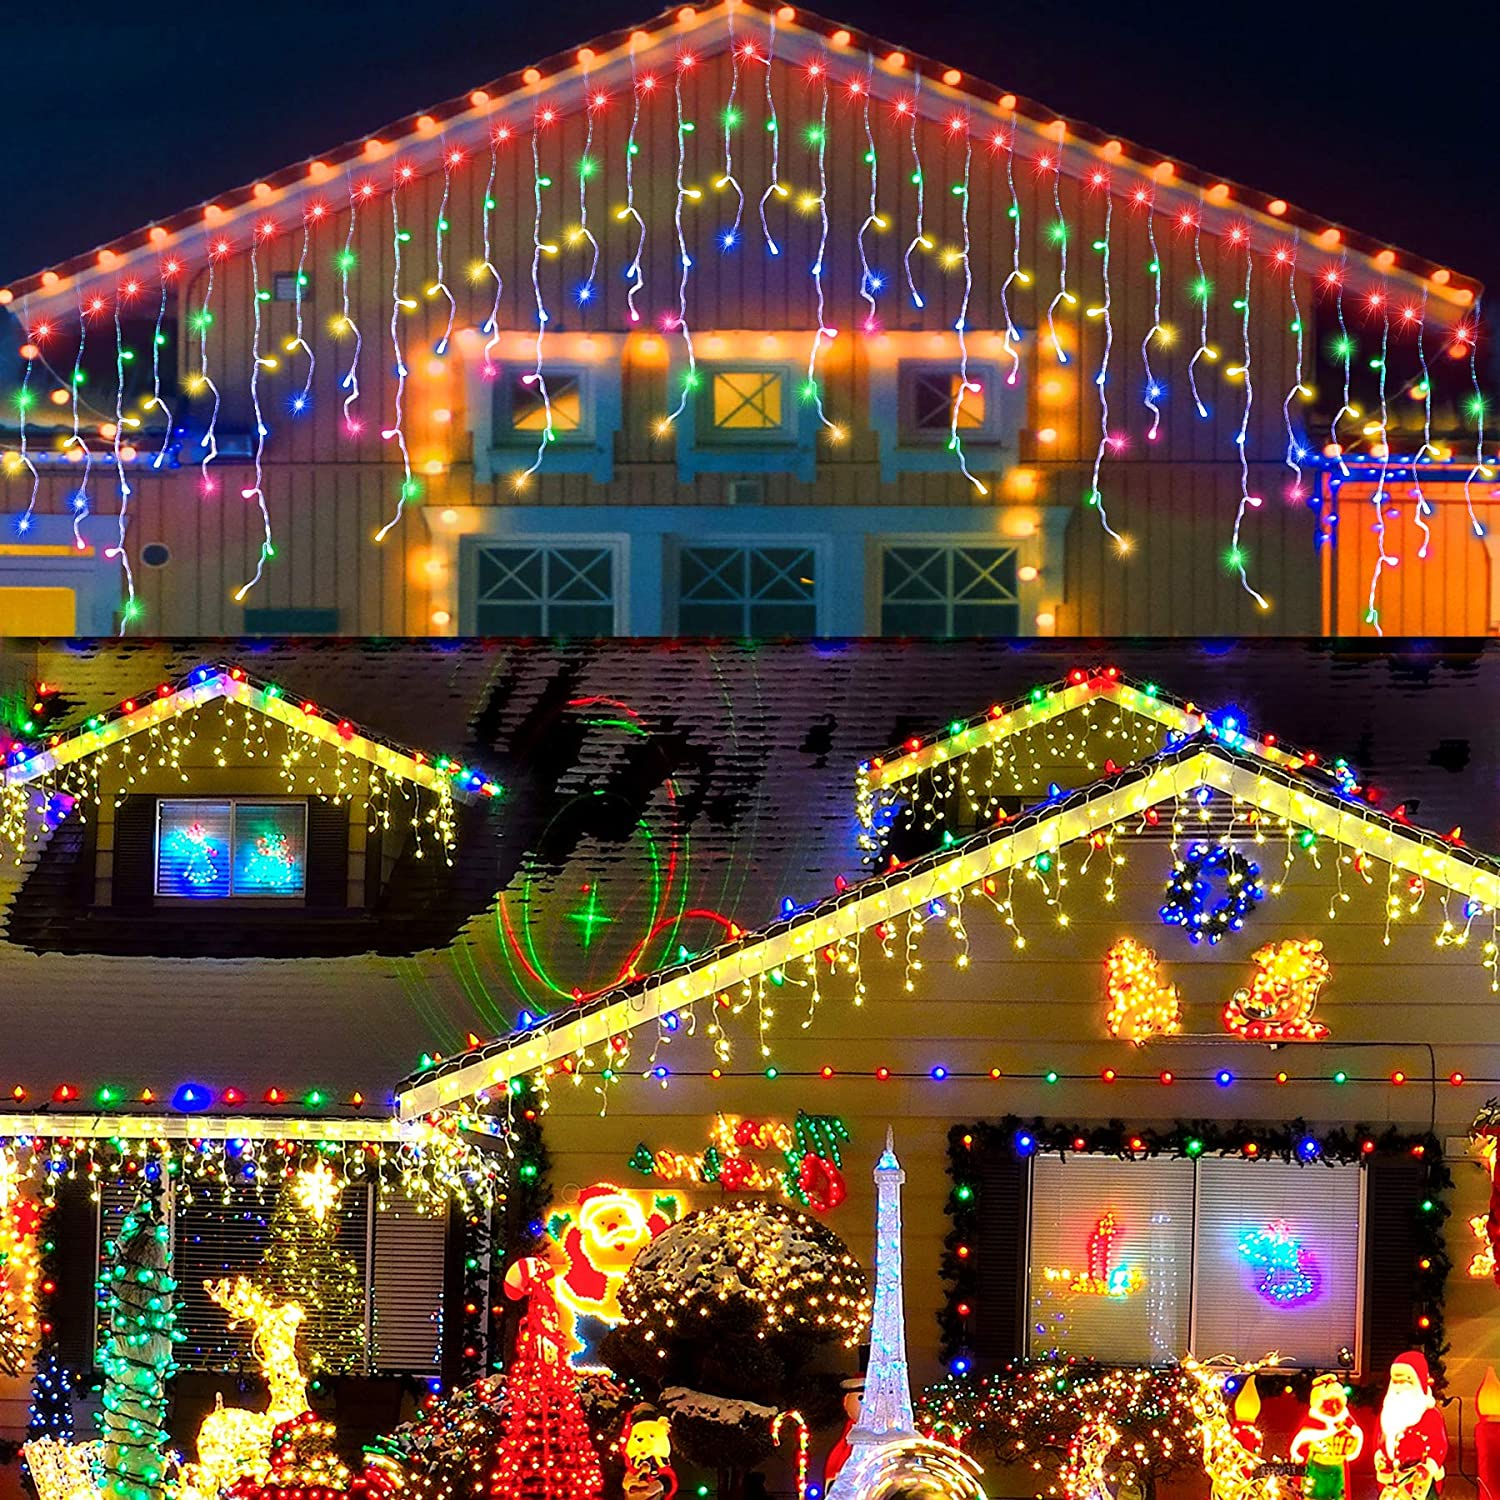 LED Icicle Lights, 640 LED Christmas Lights, 65.6FT 8 Modes Plug in Fairy String Lights with 120 Drops for Indoor Bedroom Outdoor Window, Party Decorations (Multicolored)